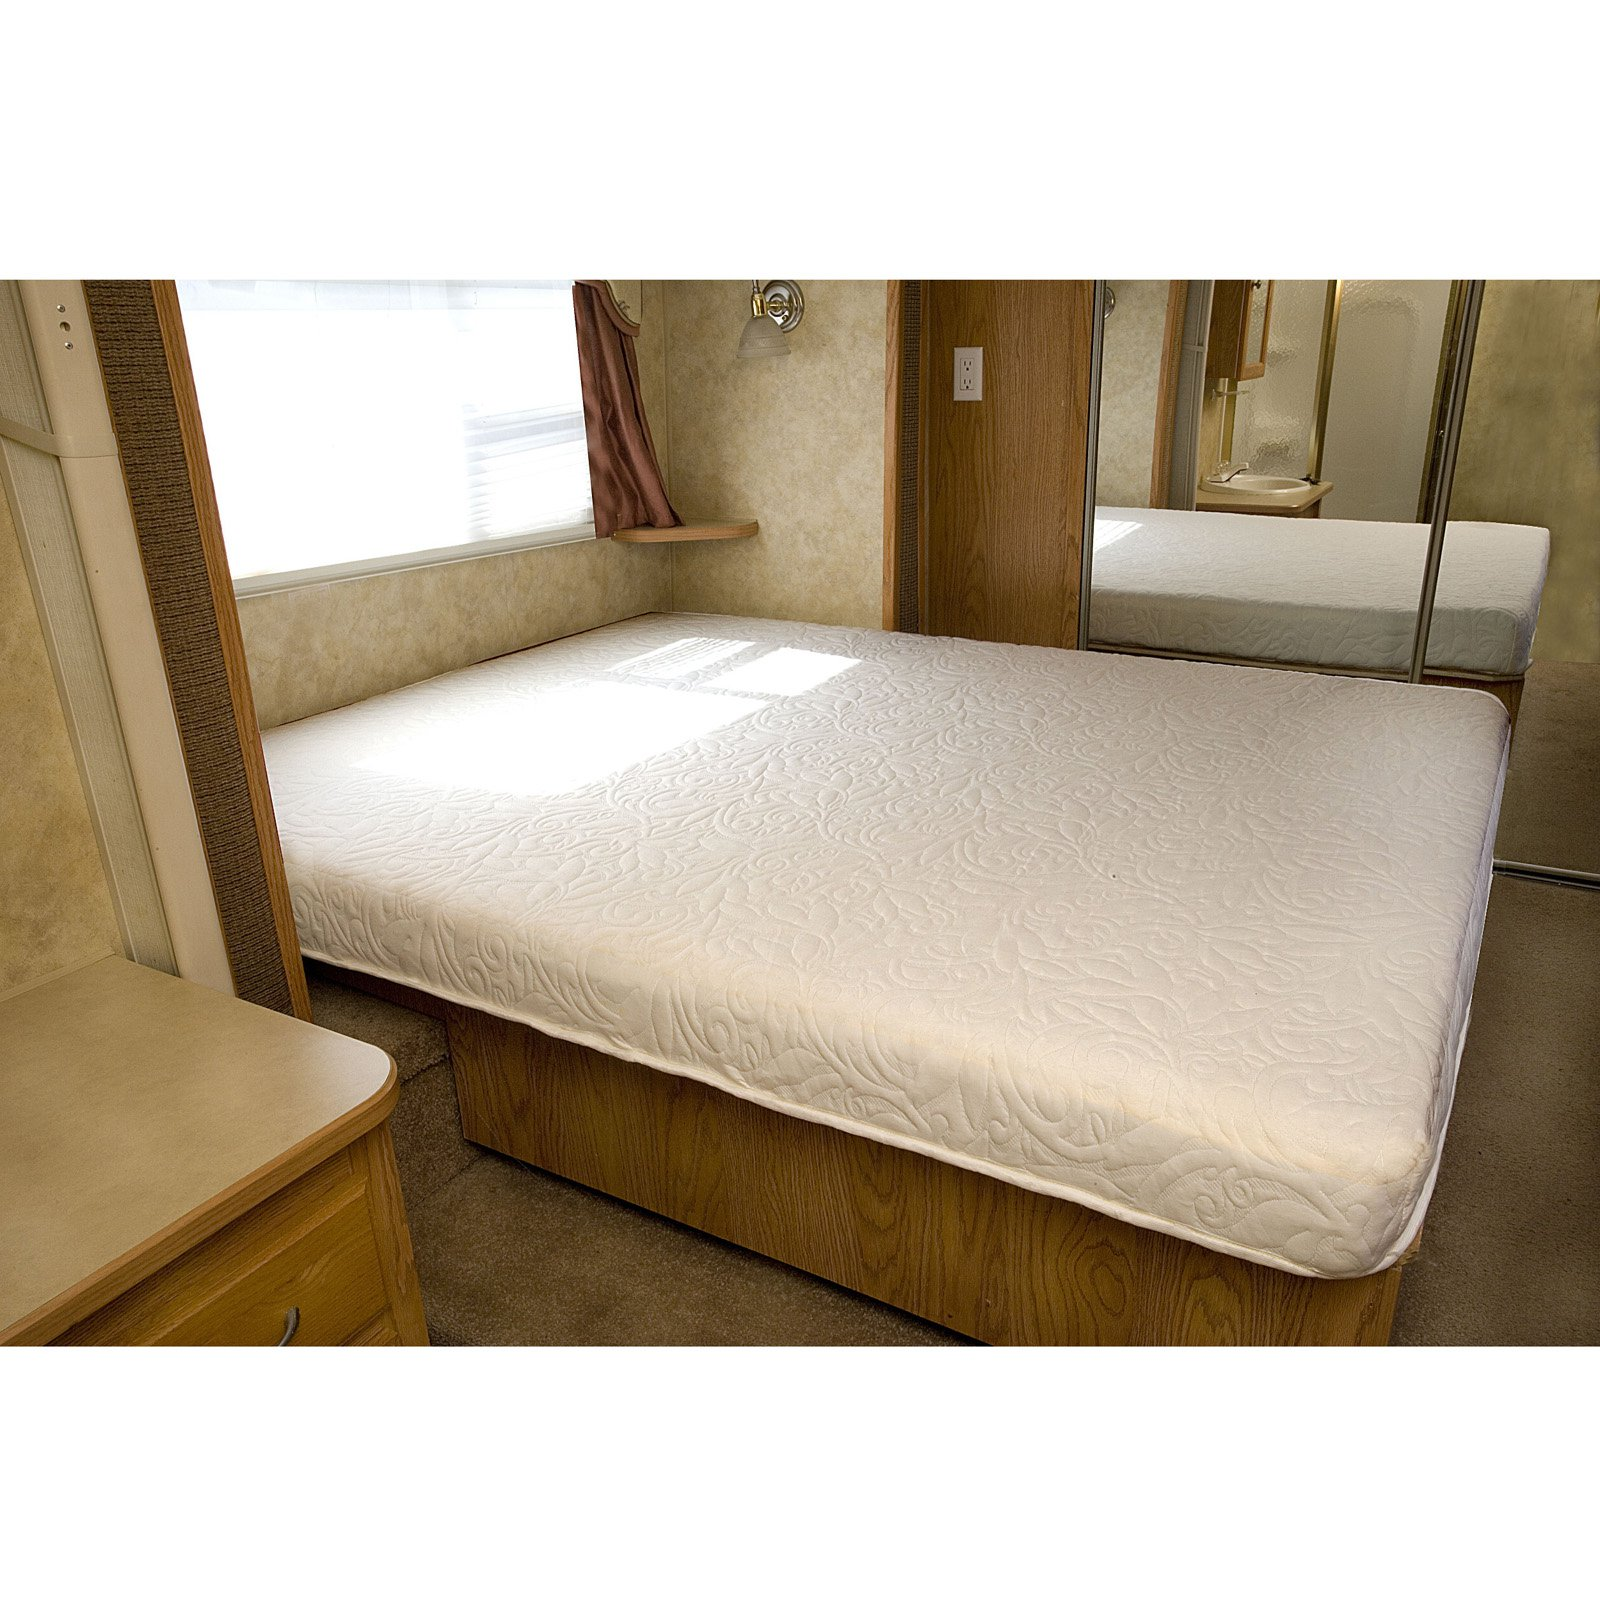 rv camper cool gel memory foam mattress short queen - Short Queen Mattress